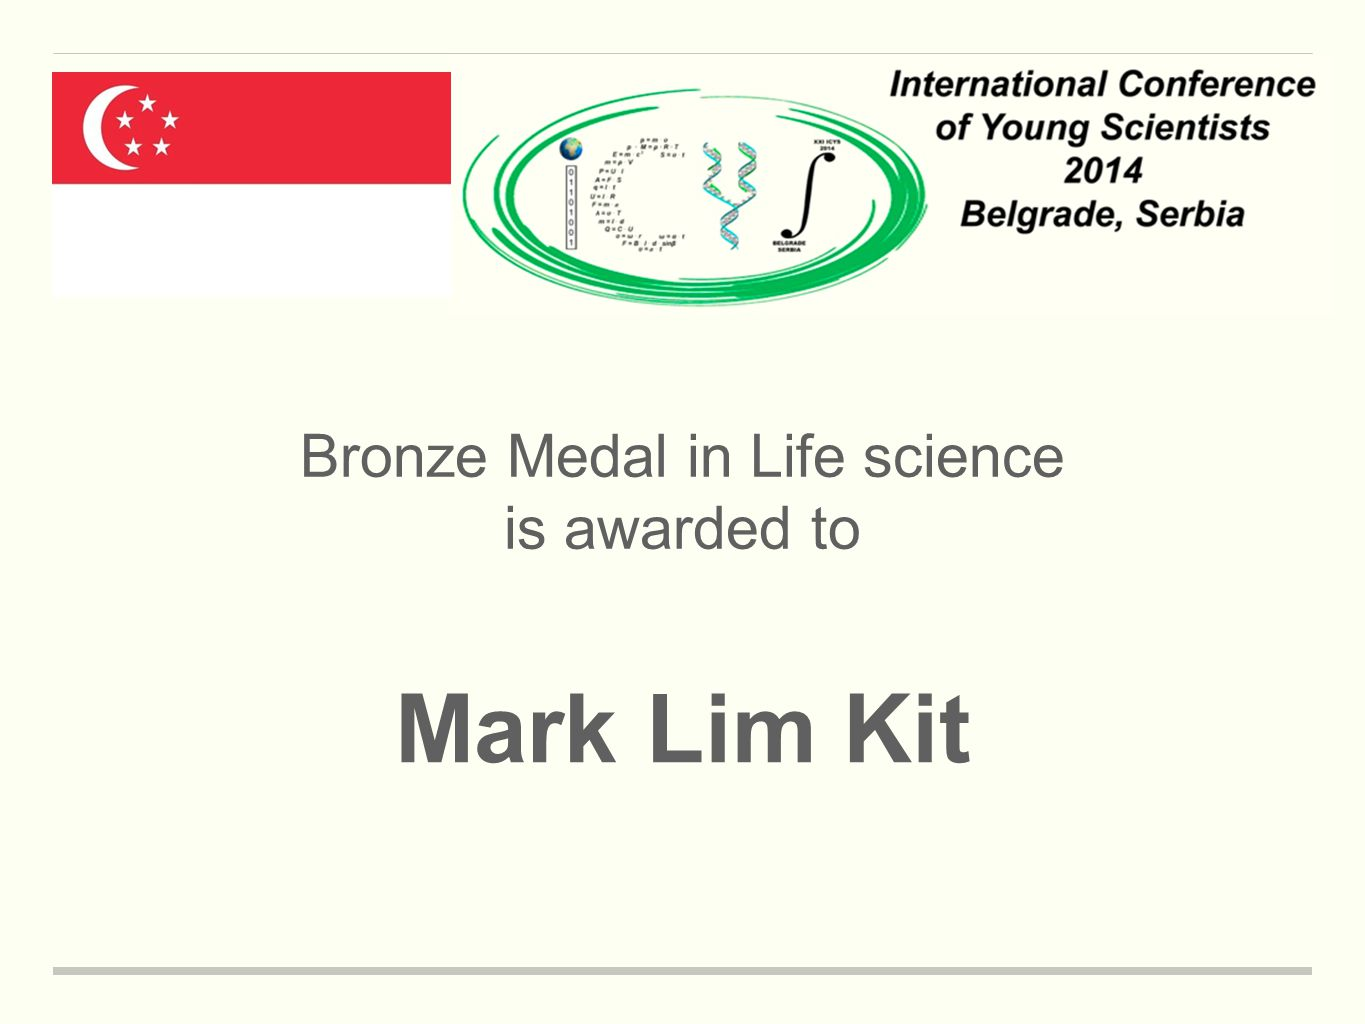 Bronze Medal in Life science is awarded to Mark Lim Kit